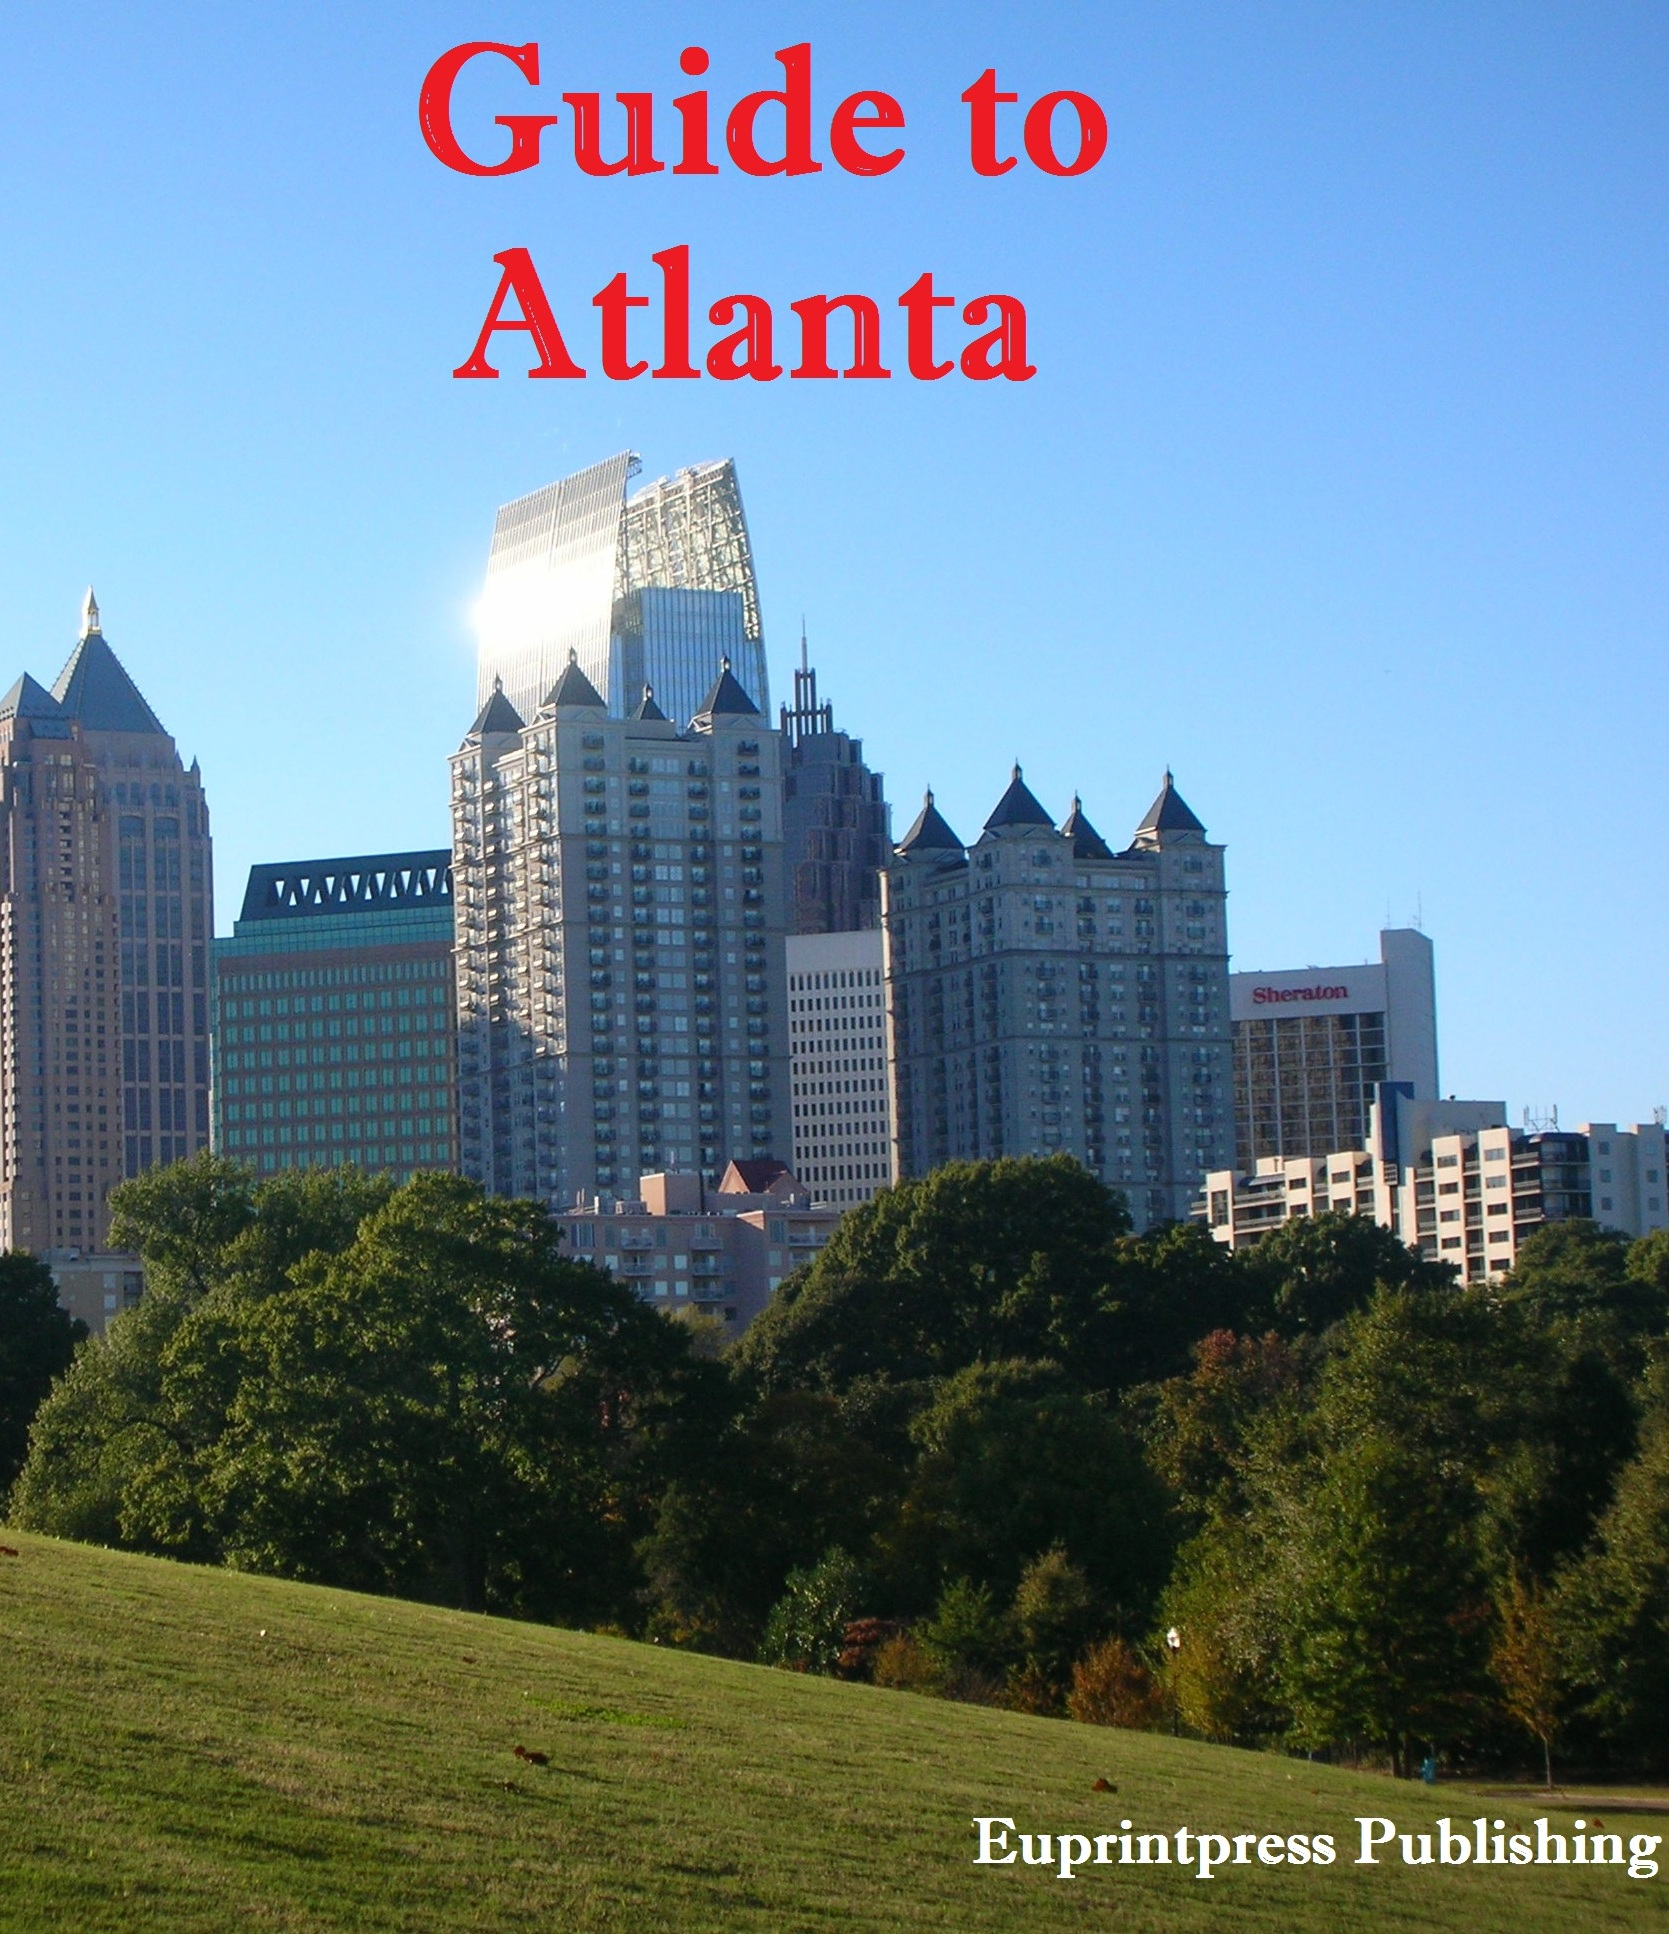 Guide to Atlanta